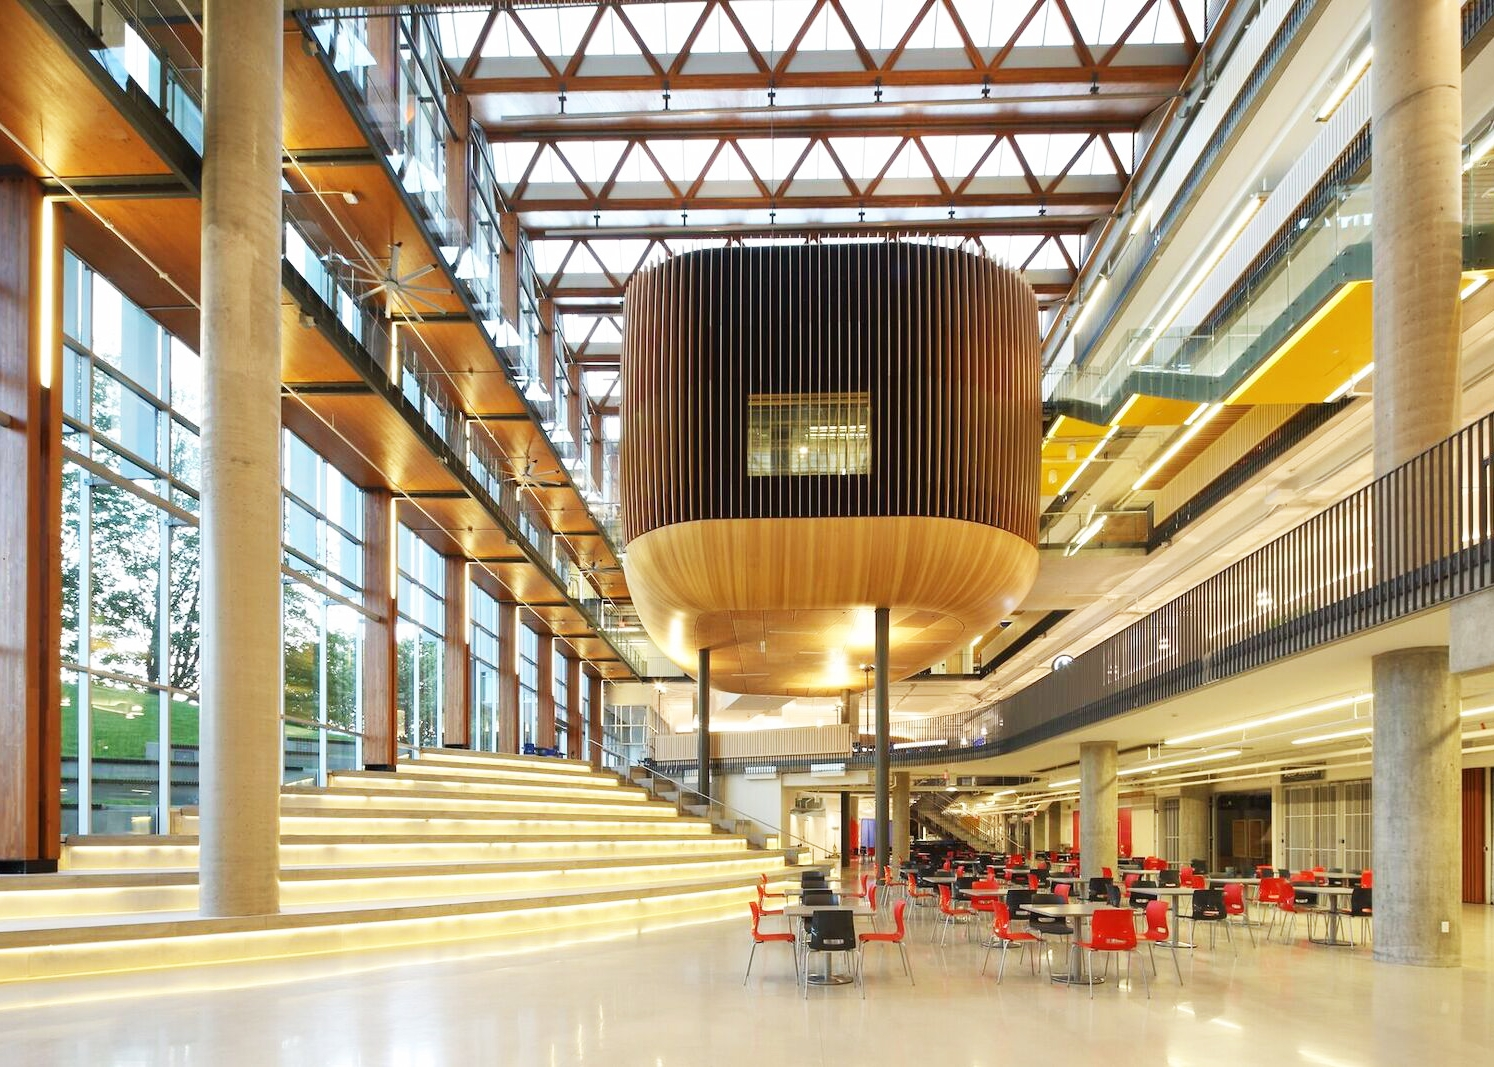 UBC Student Union Building -